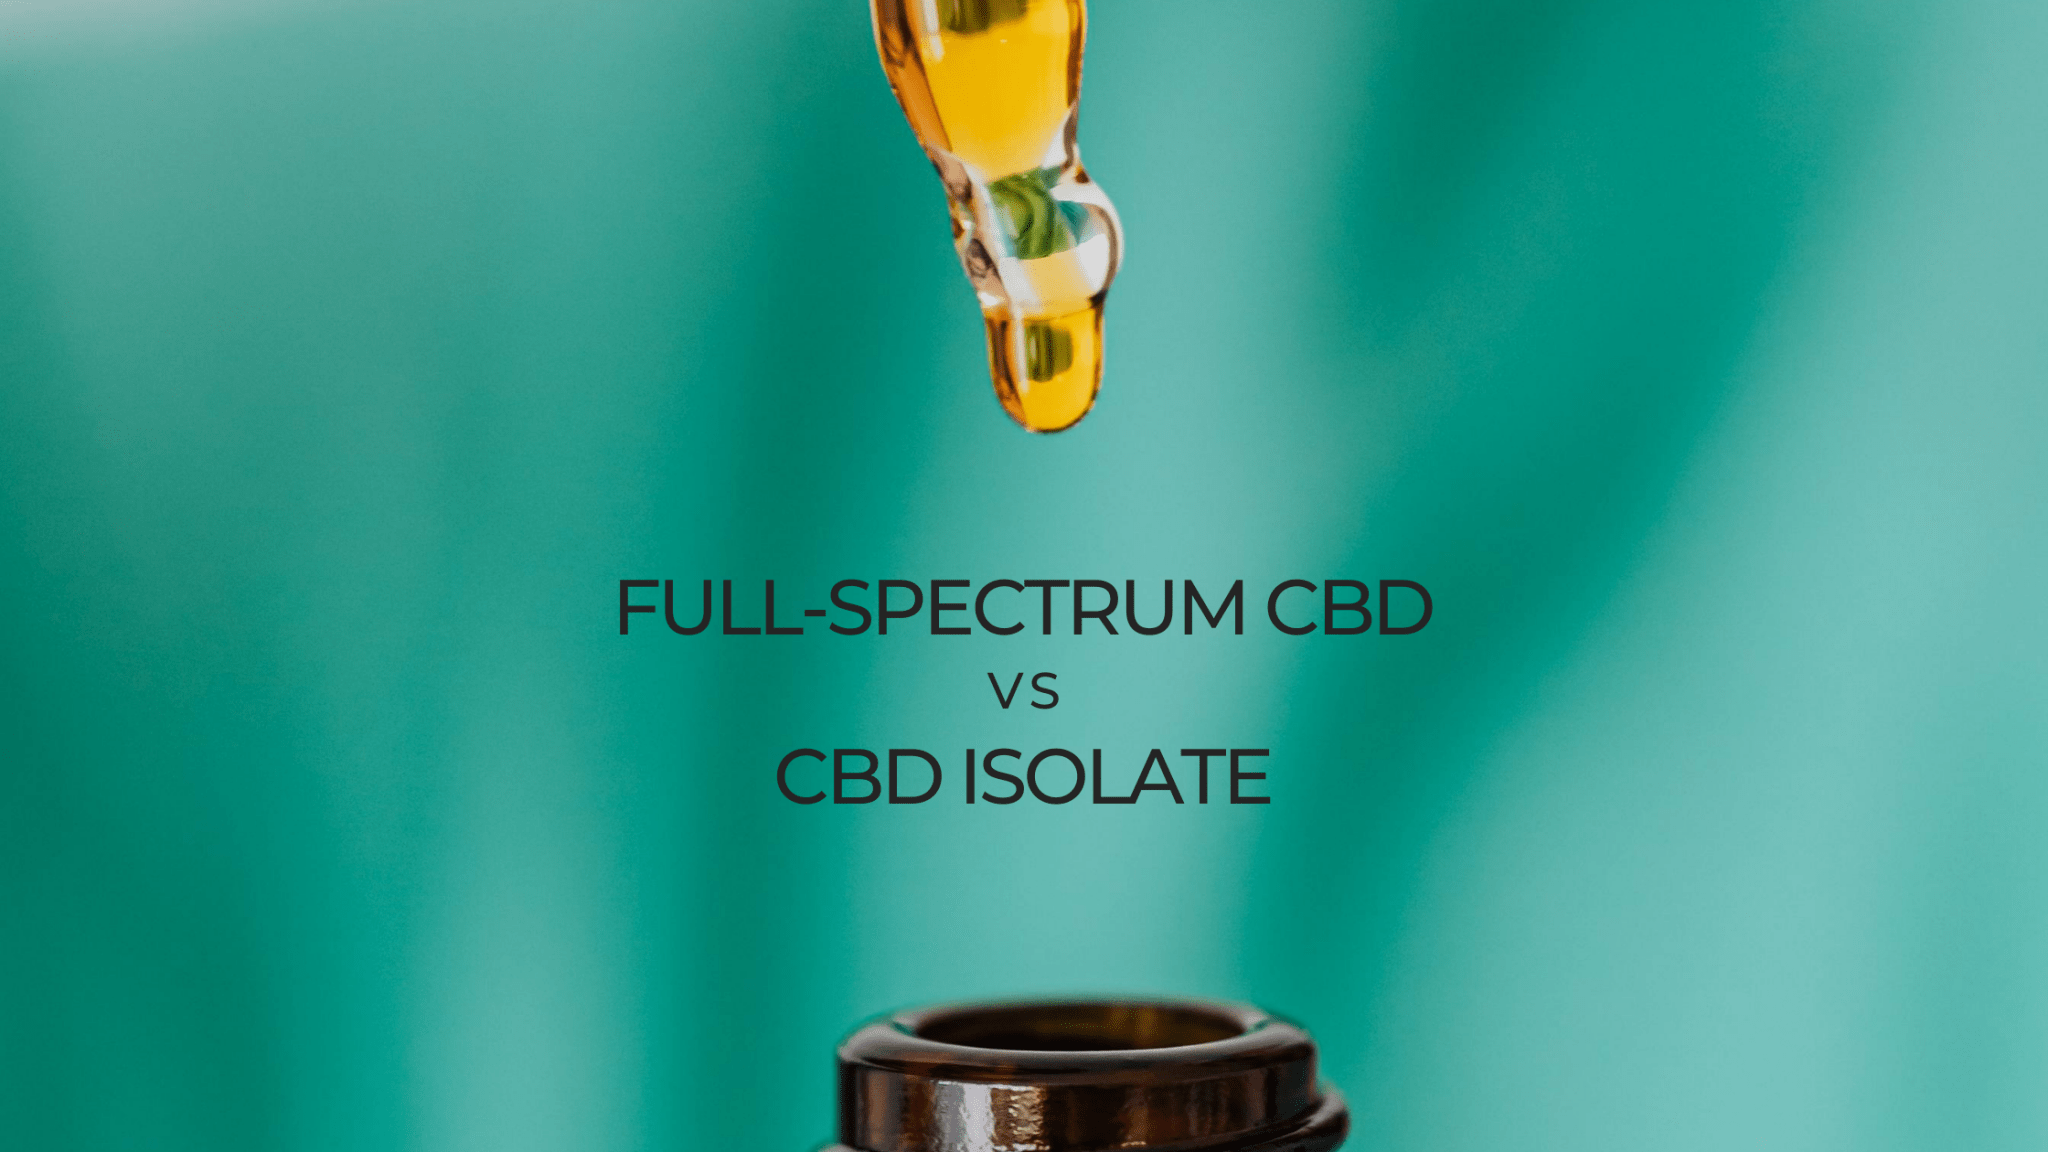 Full-Spectrum CBD Oil vs. CBD Isolate